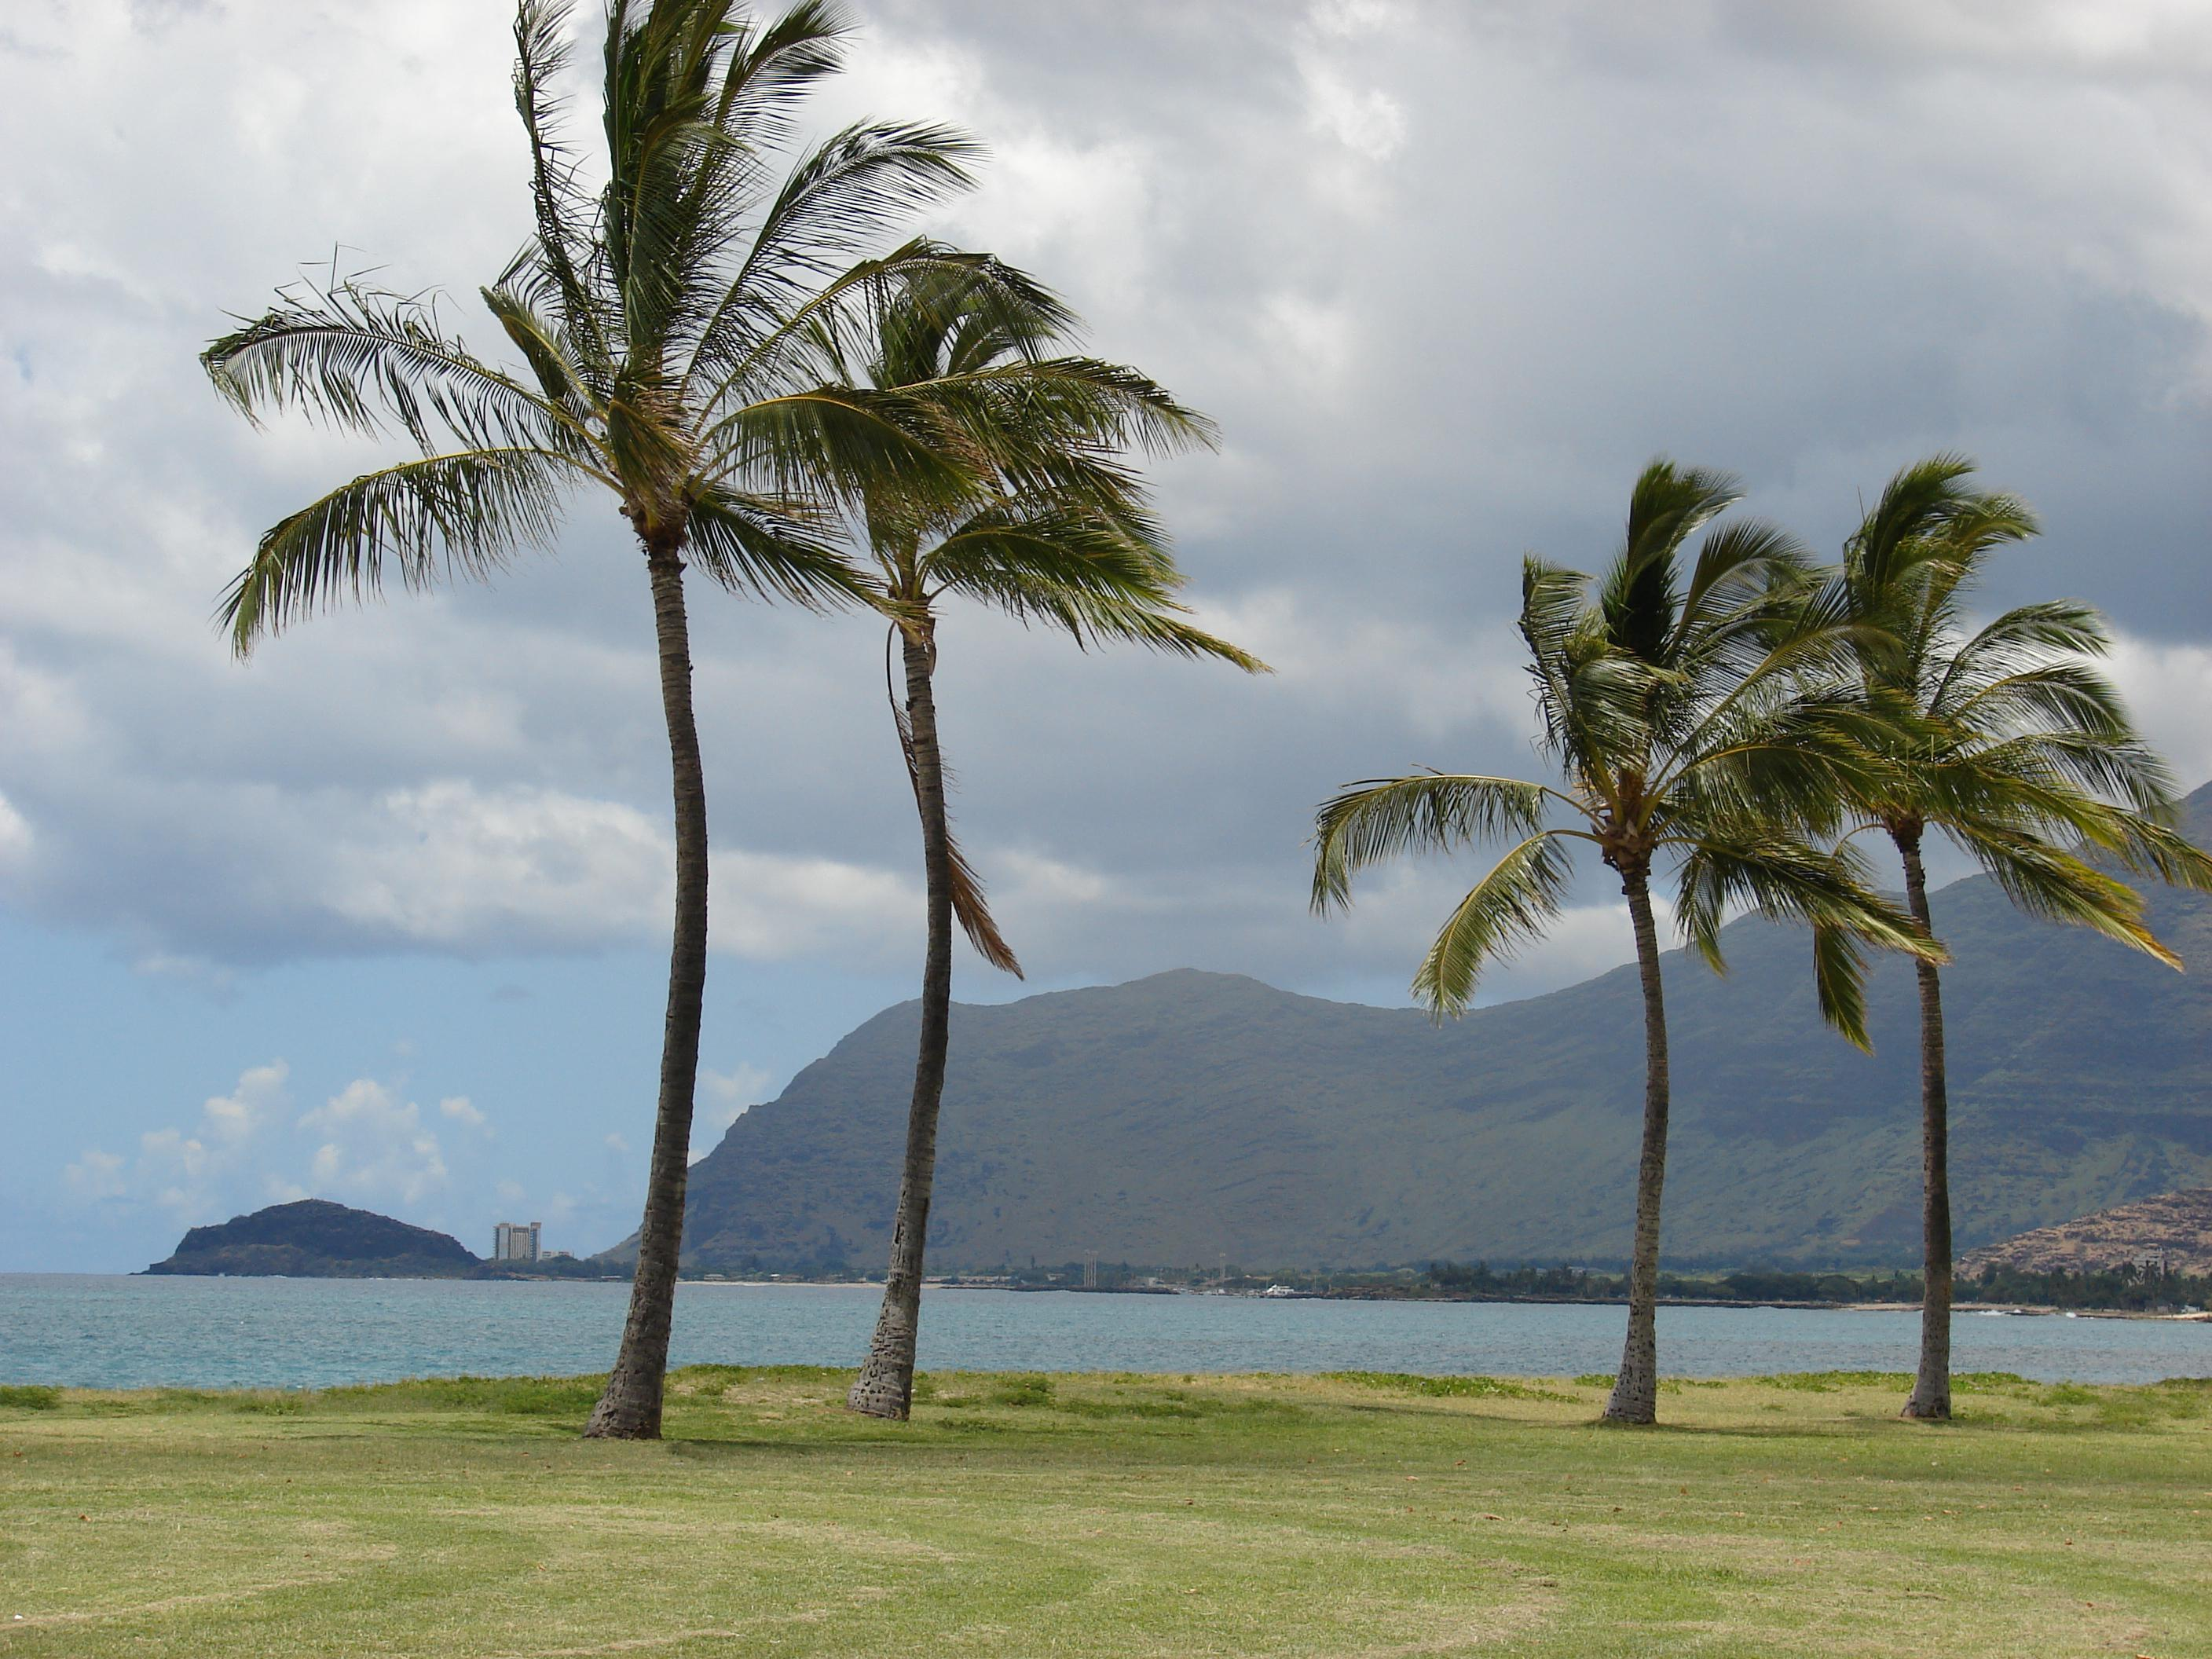 "Oahu Waianae (West) Shore<br />Photo <a href=""//creativecommons.org/licences/by/3.0/"" class=""cc-small"" target=""_blank""><img typeof=""foaf:Image"" class=""image-style-none"" src=""https://i.creativecommons.org/l/by/3.0/80x15.png"" width=""80px"" height=""15px"" alt=""Creative Commons Licence"" /></a> <a href=""http://www.flickr.com/photos/97499887@N06/9195987035/"">Forest and Kim Starr</a>"